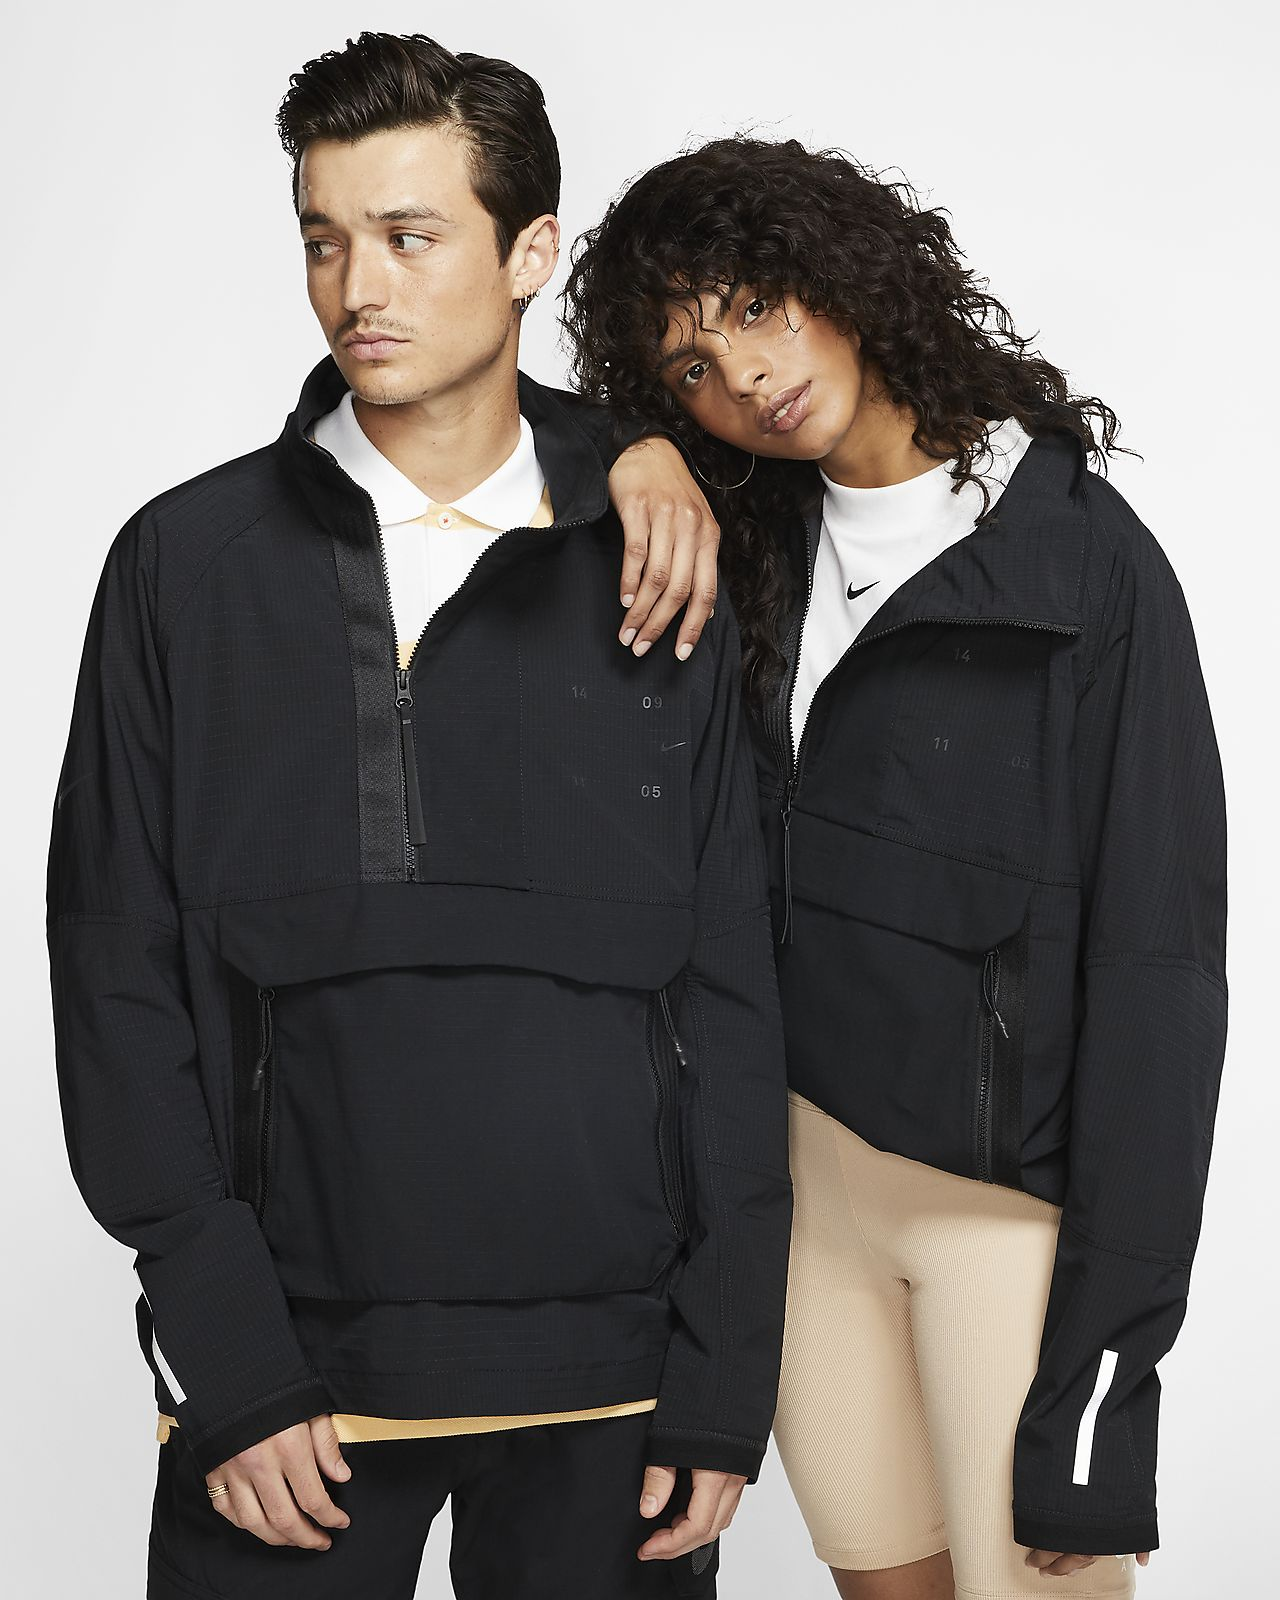 Nike Gold Coats & Jackets for Men for Sale | Shop New & Used